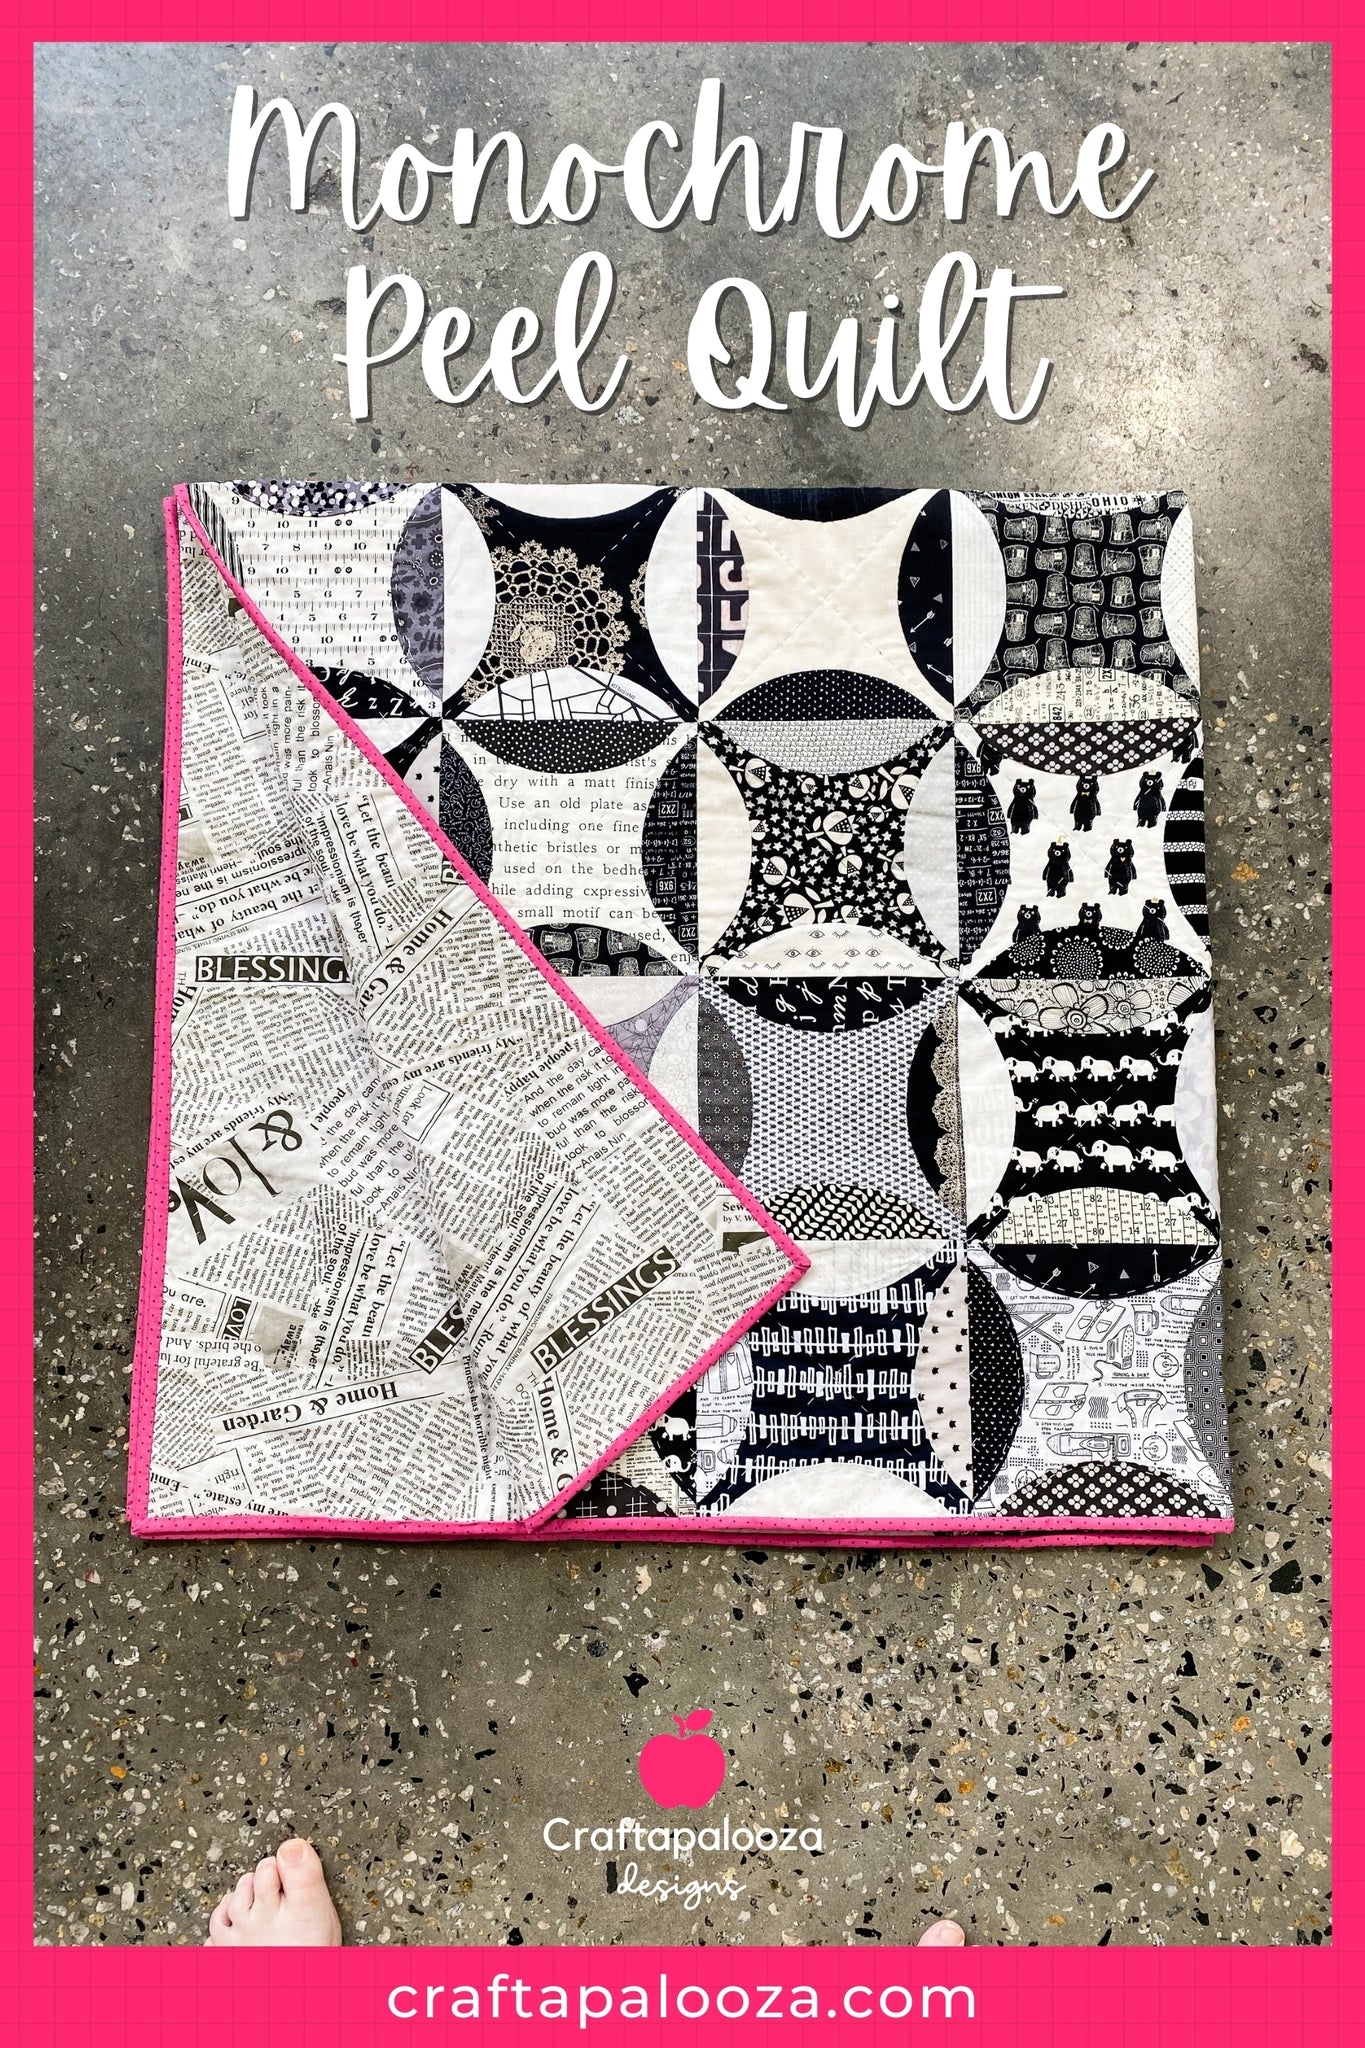 craftapalooza-designs-monochrome-peel-quilt-make-modern-magazine